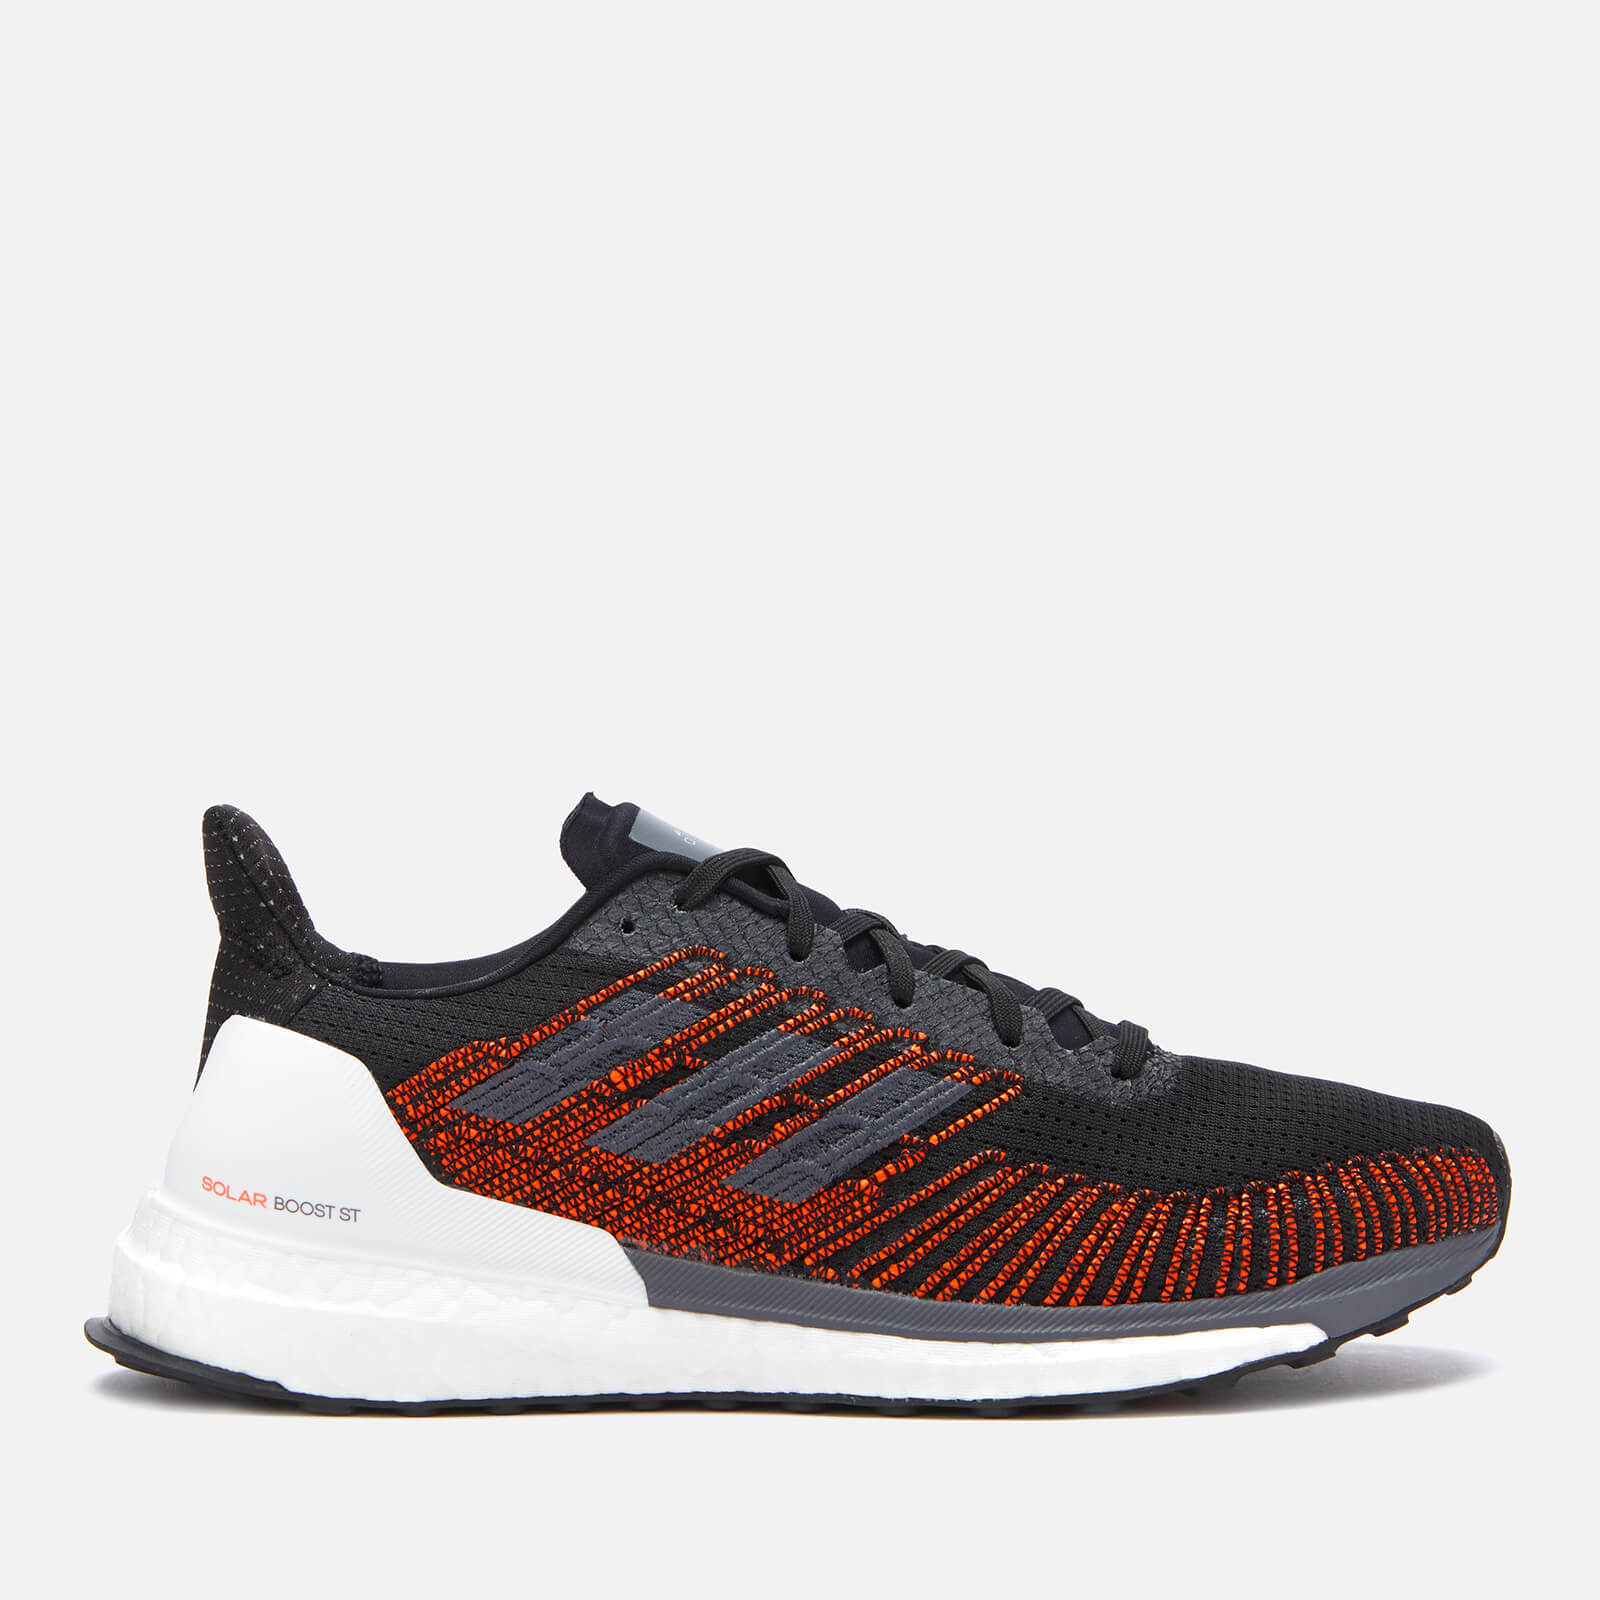 purchase cheap 12c08 f1ace adidas Men s Solar Boost ST 19 Trainers - Black Orange Sports   Leisure    TheHut.com